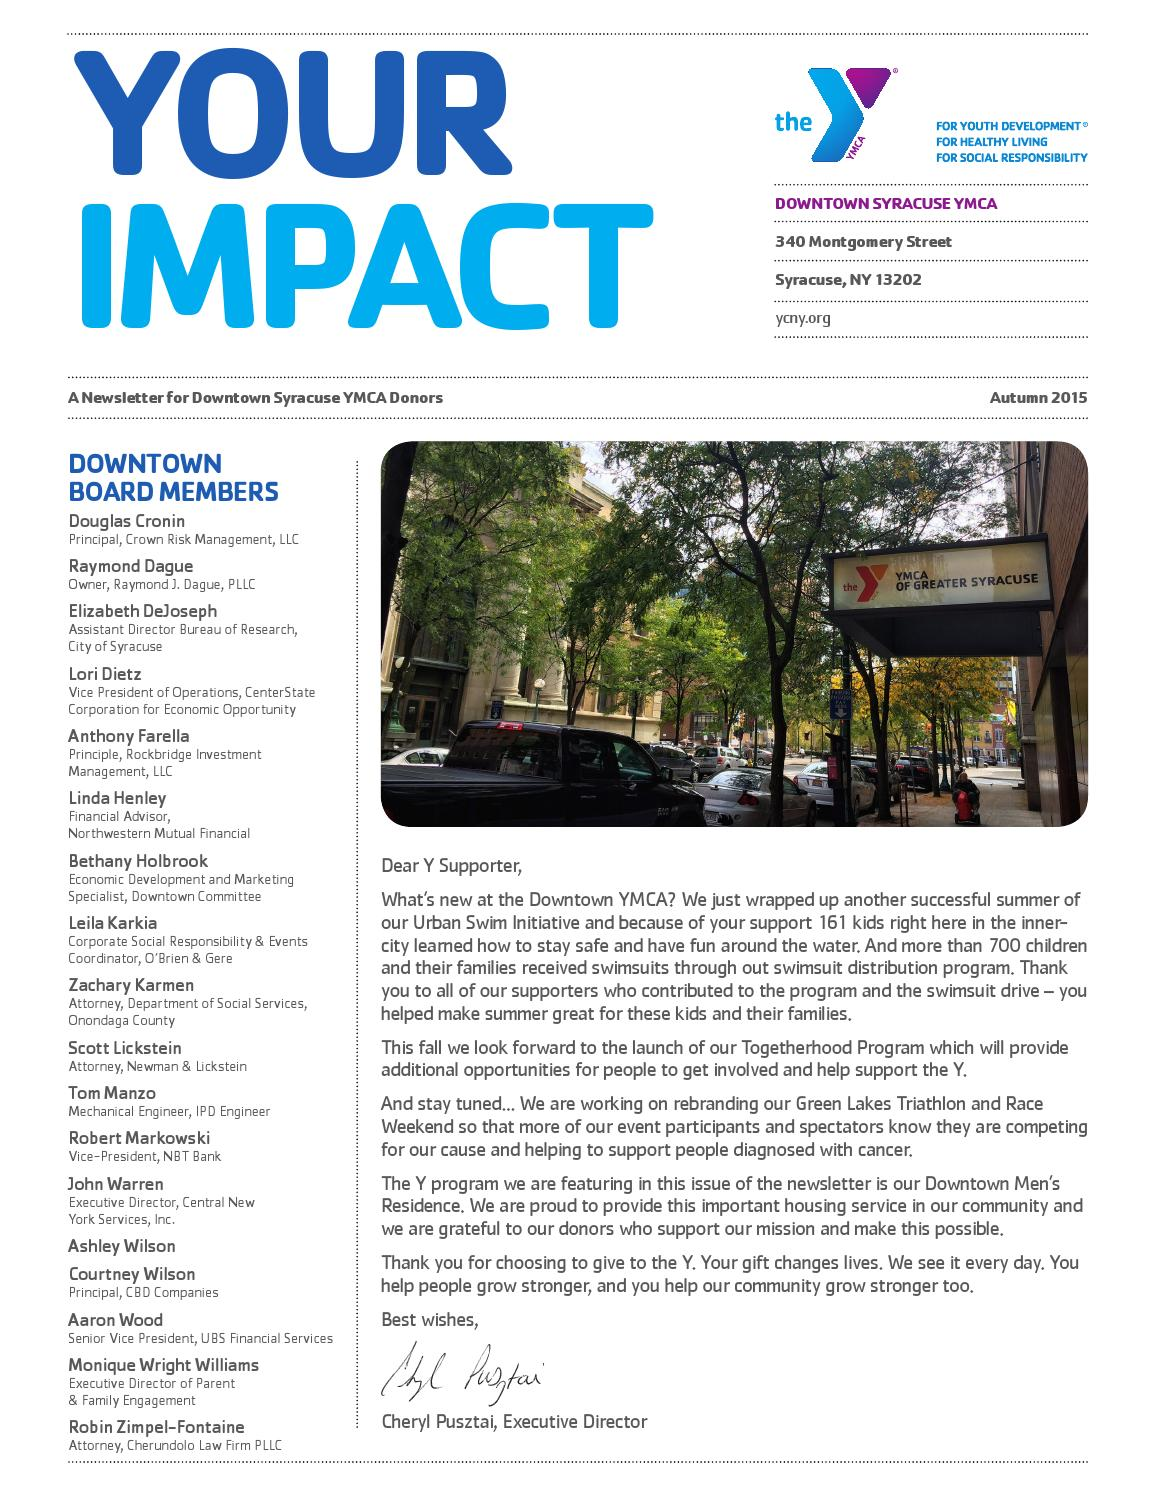 Downtown Syracuse YMCA Autumn Donor Newsletter by YMCA of Greater Syracuse  Issuu